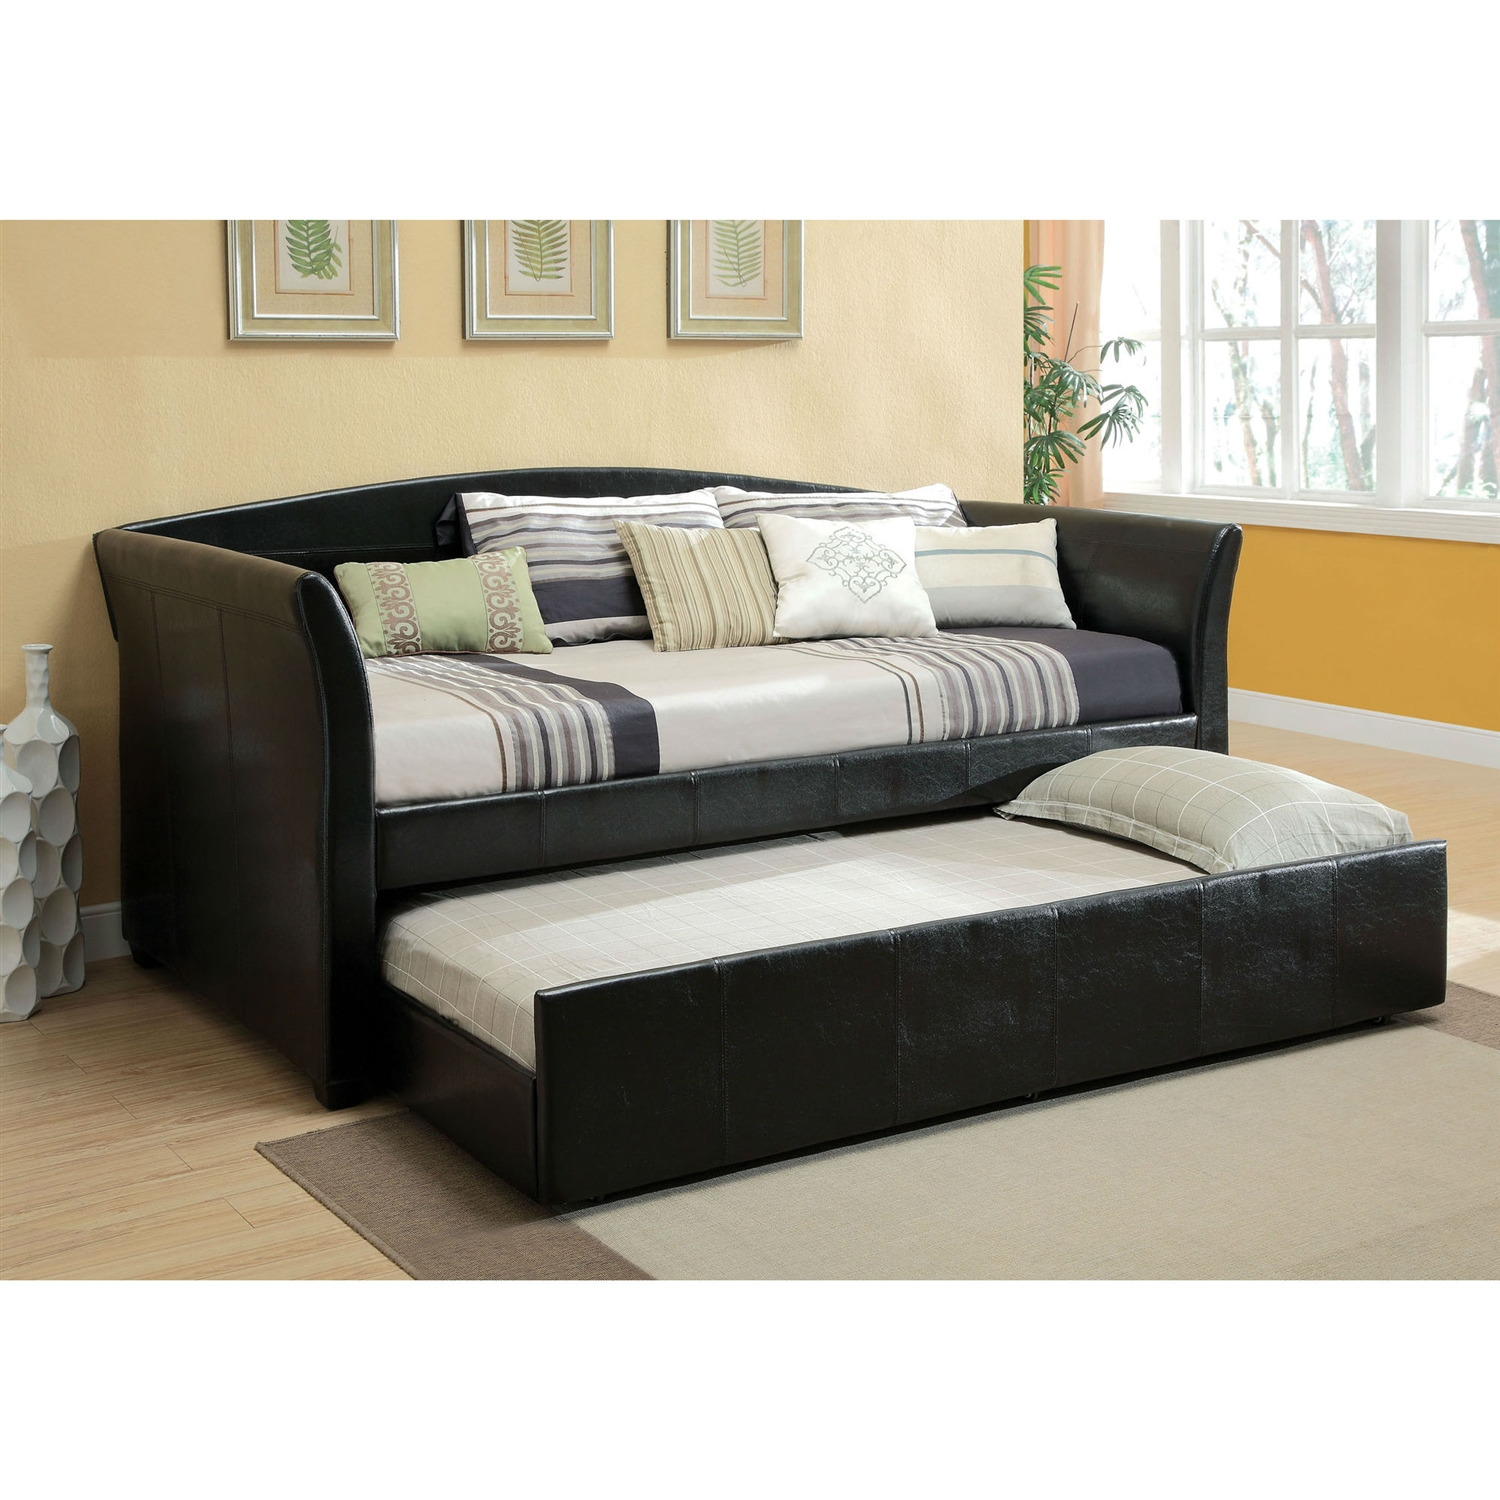 Twin size Modern Black Faux Leather Daybed with Trundle: Product Code: HDRDTB783 : Perfect addition to a guestroom, den or kids room. This Twin size Modern Black Faux Leather Daybed with Trundle is outfitted with a hidden trundle with casters for easy roll out. Constructed out of solid wood and posh leatherette upholstery. Padded cushioning on back and arm panels, making it an inviting spot to relax; Twin roll-out trundle that is an ideal space saver, great for slipovers; Slats support system, slat kit included; Great structural rigidity; Modern style; 30 Days warranty.